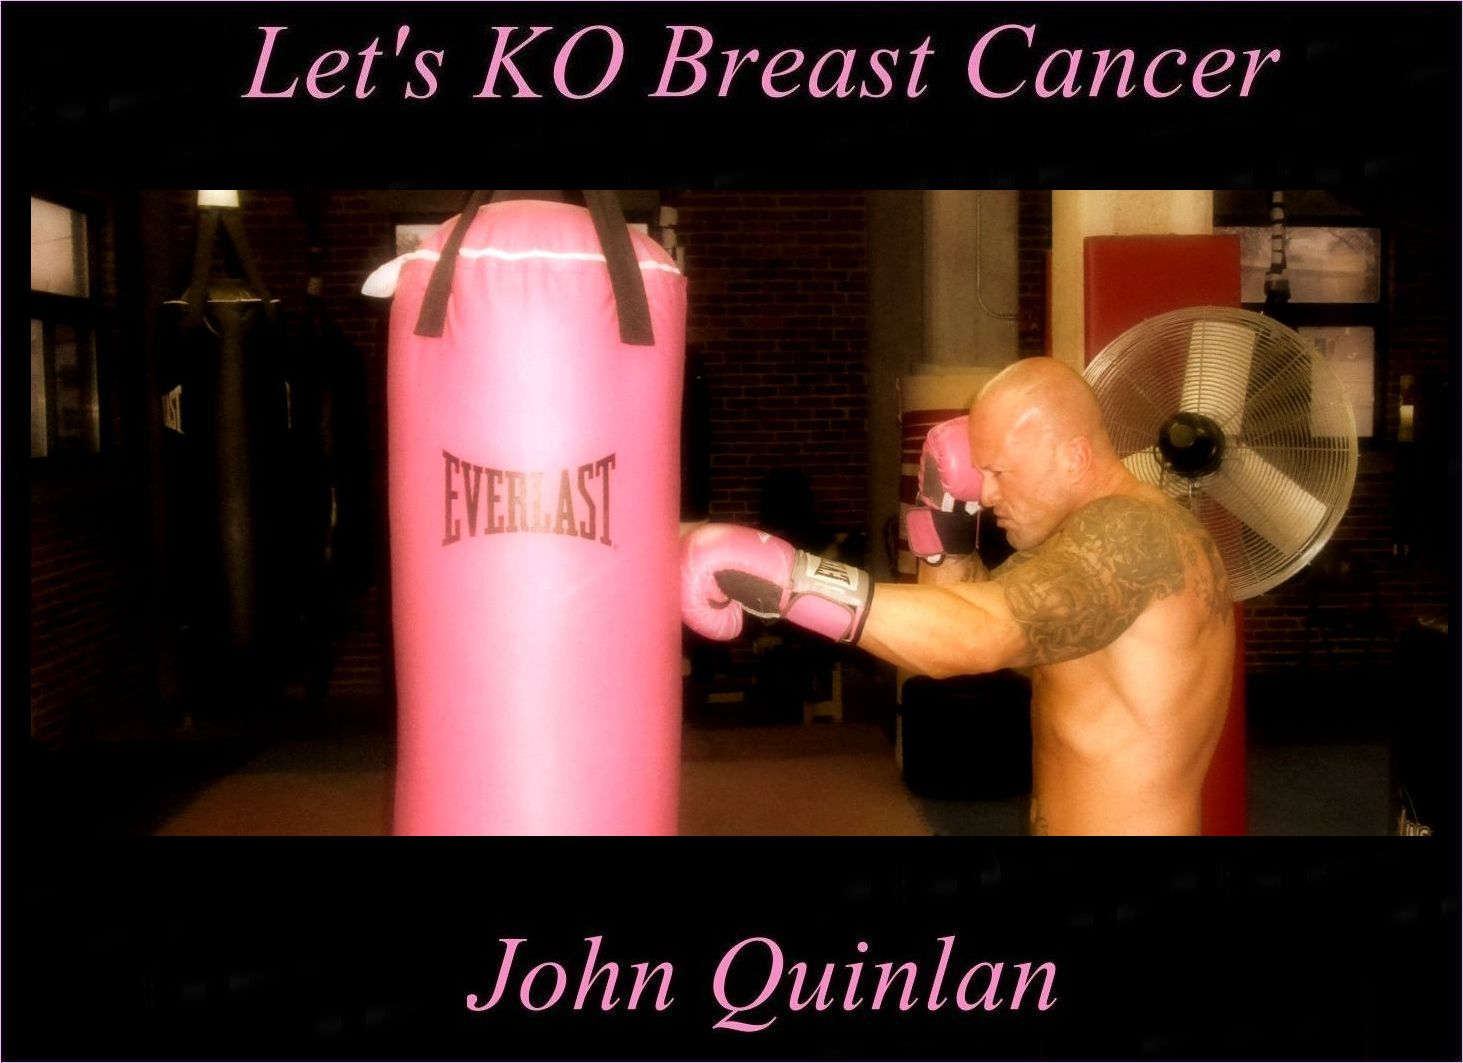 Tattooed Boston Physique Model & Actor John Joseph Quinlan 2015 Pilot Film Series Project KO Breast Cancer Boxing #JohnQuinlan